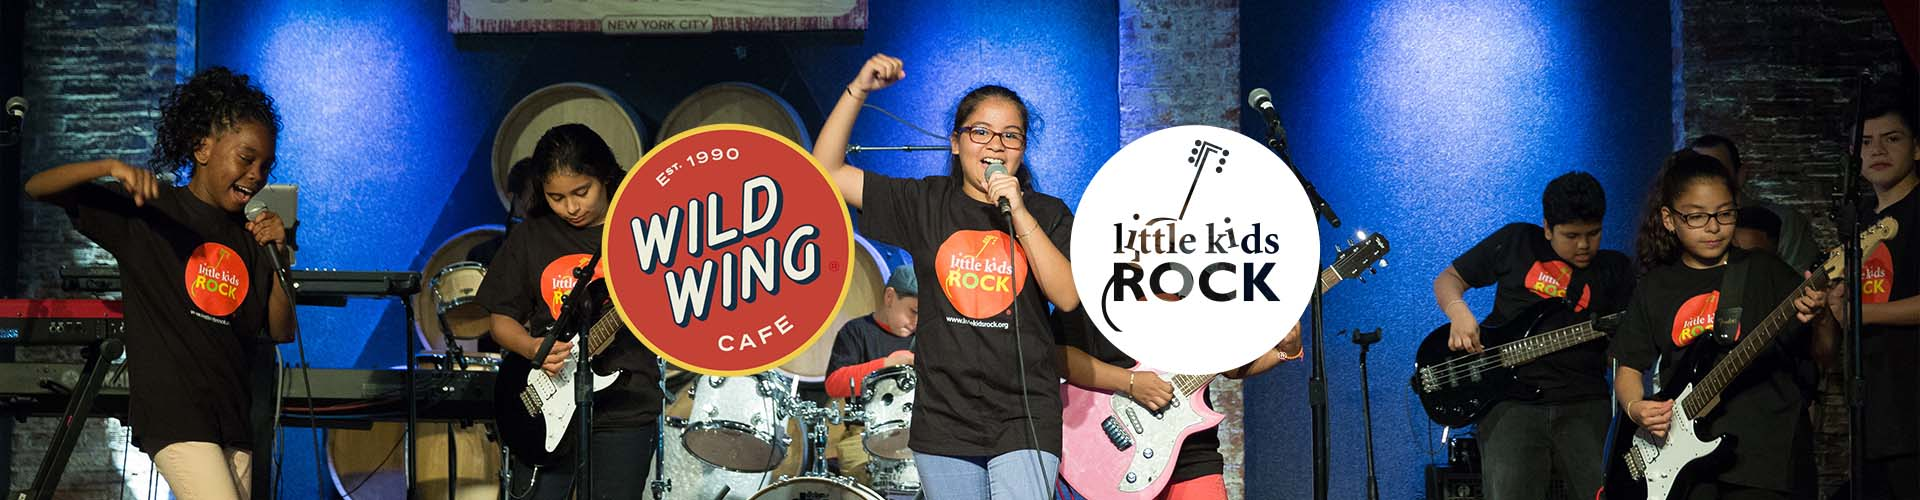 Student band performing onstage with the Wild Wings Cafe and Little Kids Rock logos on top.